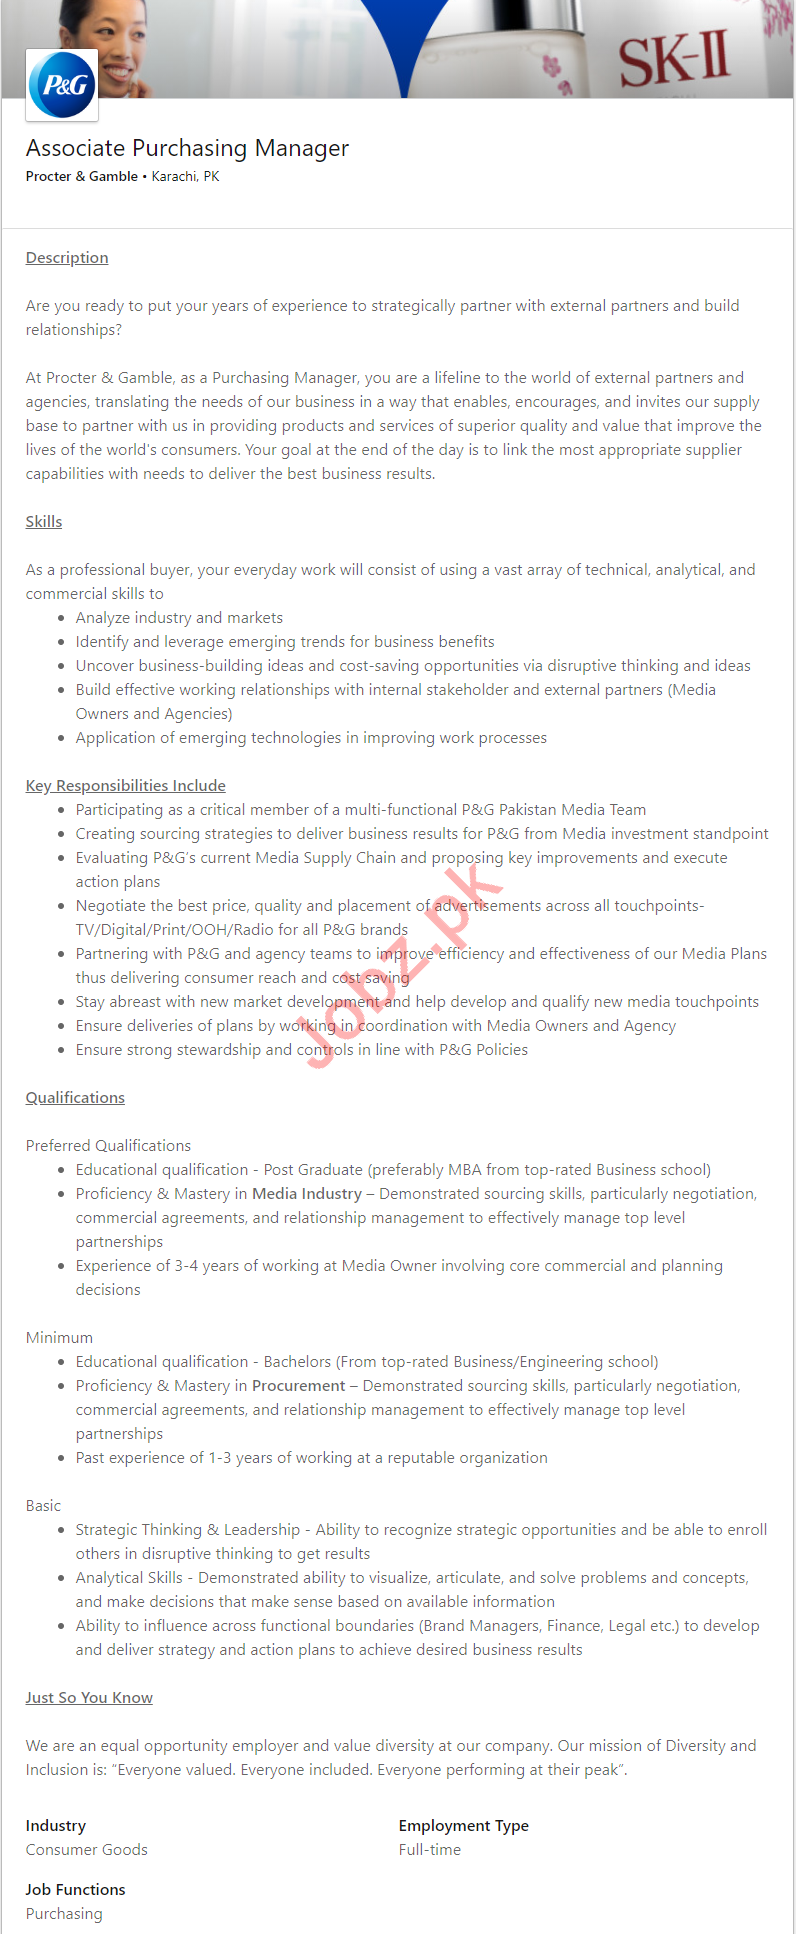 Associate Purchasing Manager Jobs in Procter & Gamble 2019